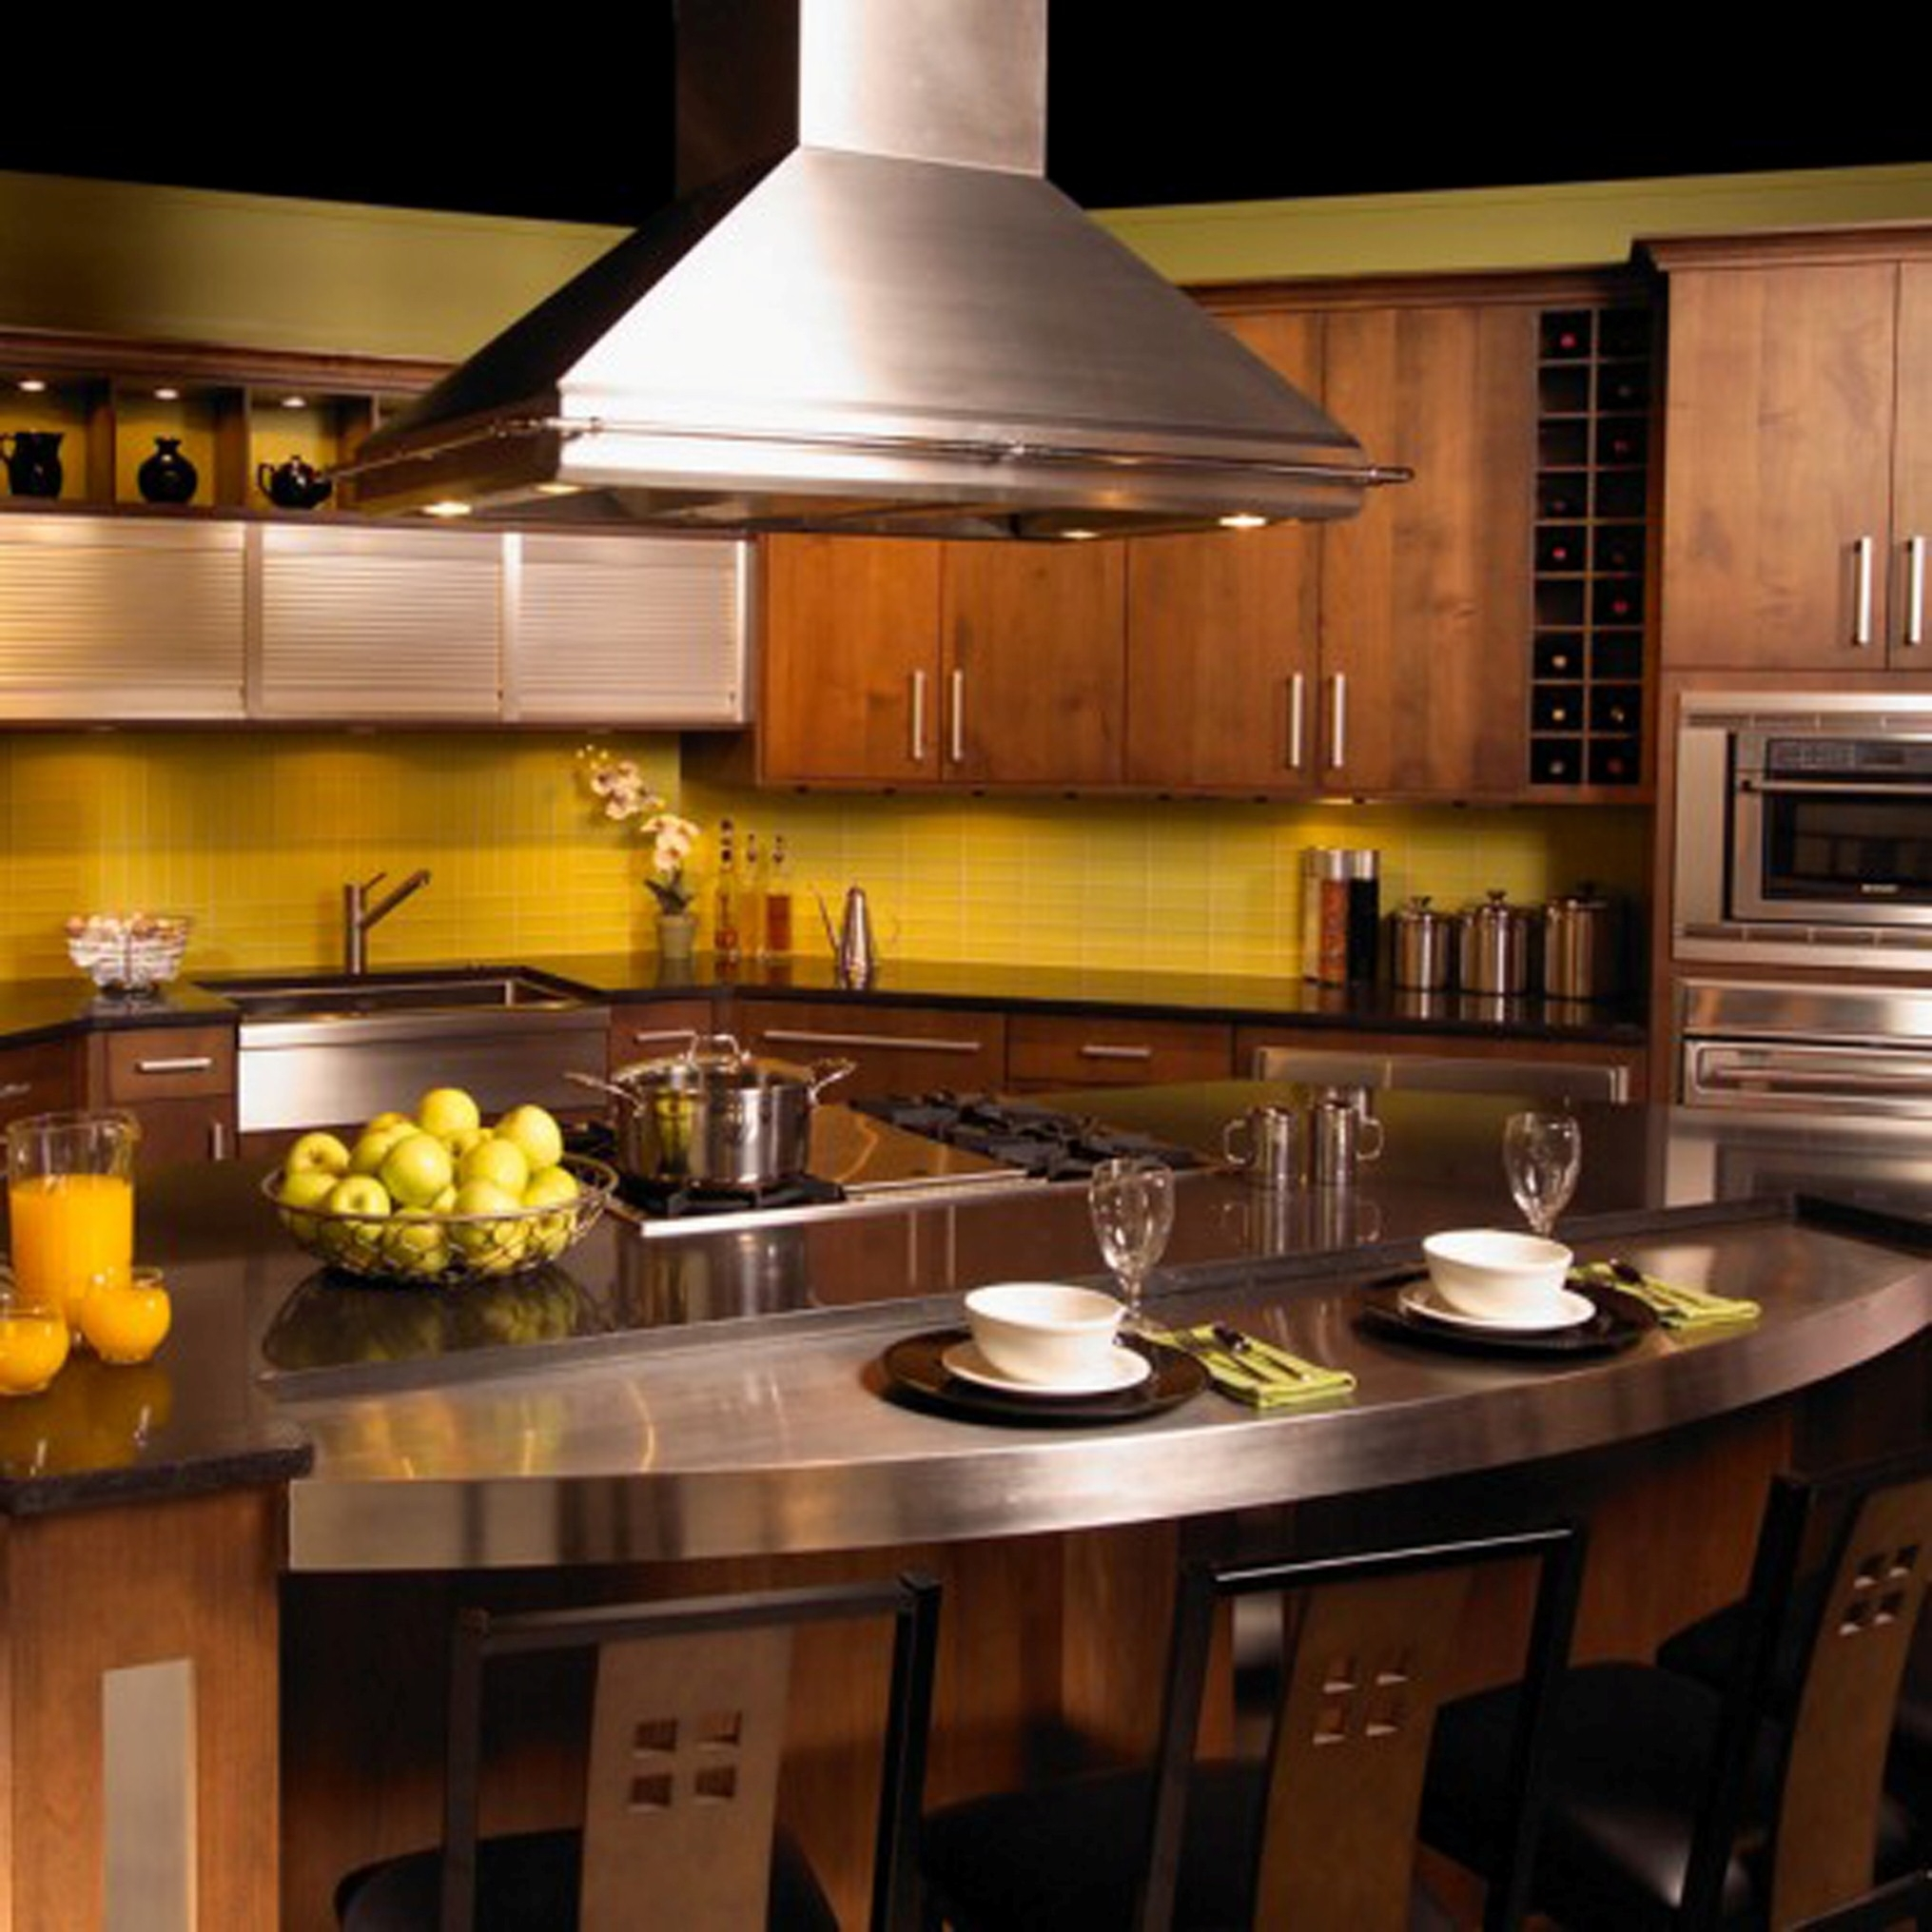 Modern Kitchen Design With Amaze Oval Kitchen Bar Design Plus Marvelous Yellow Backsplash Design (Image 21 of 31)